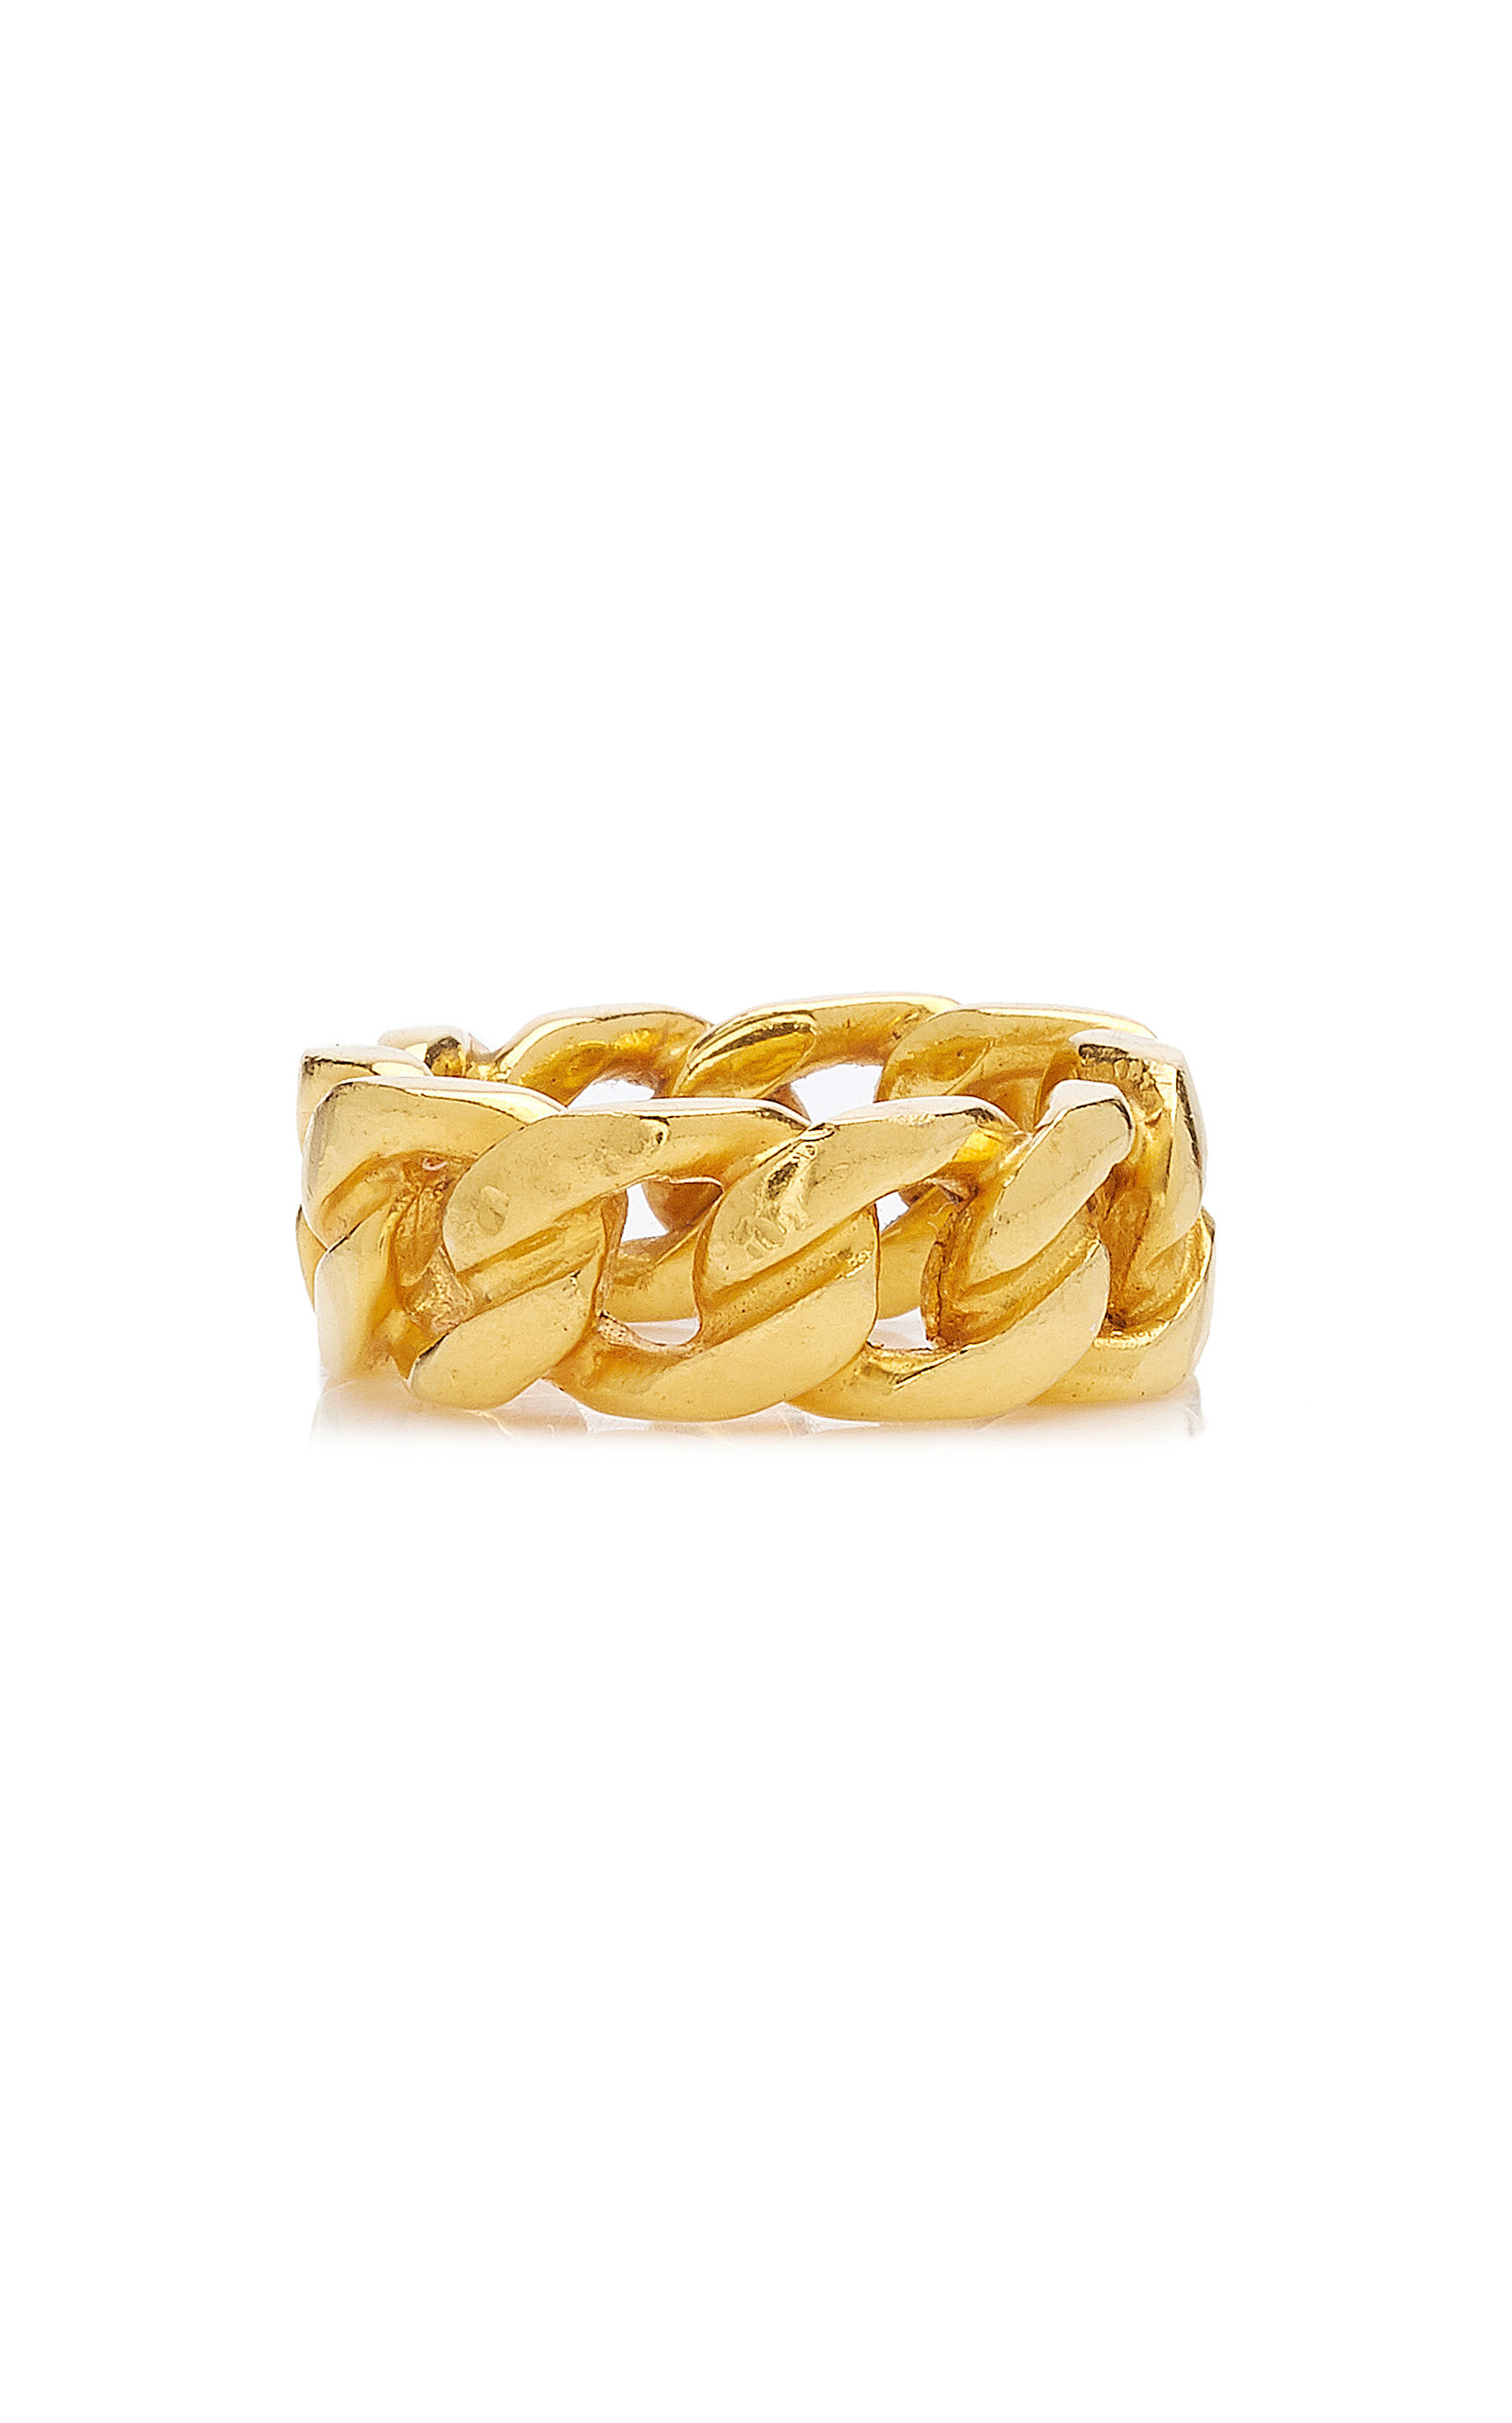 Women's 14K Gold-Plated Chain Ring